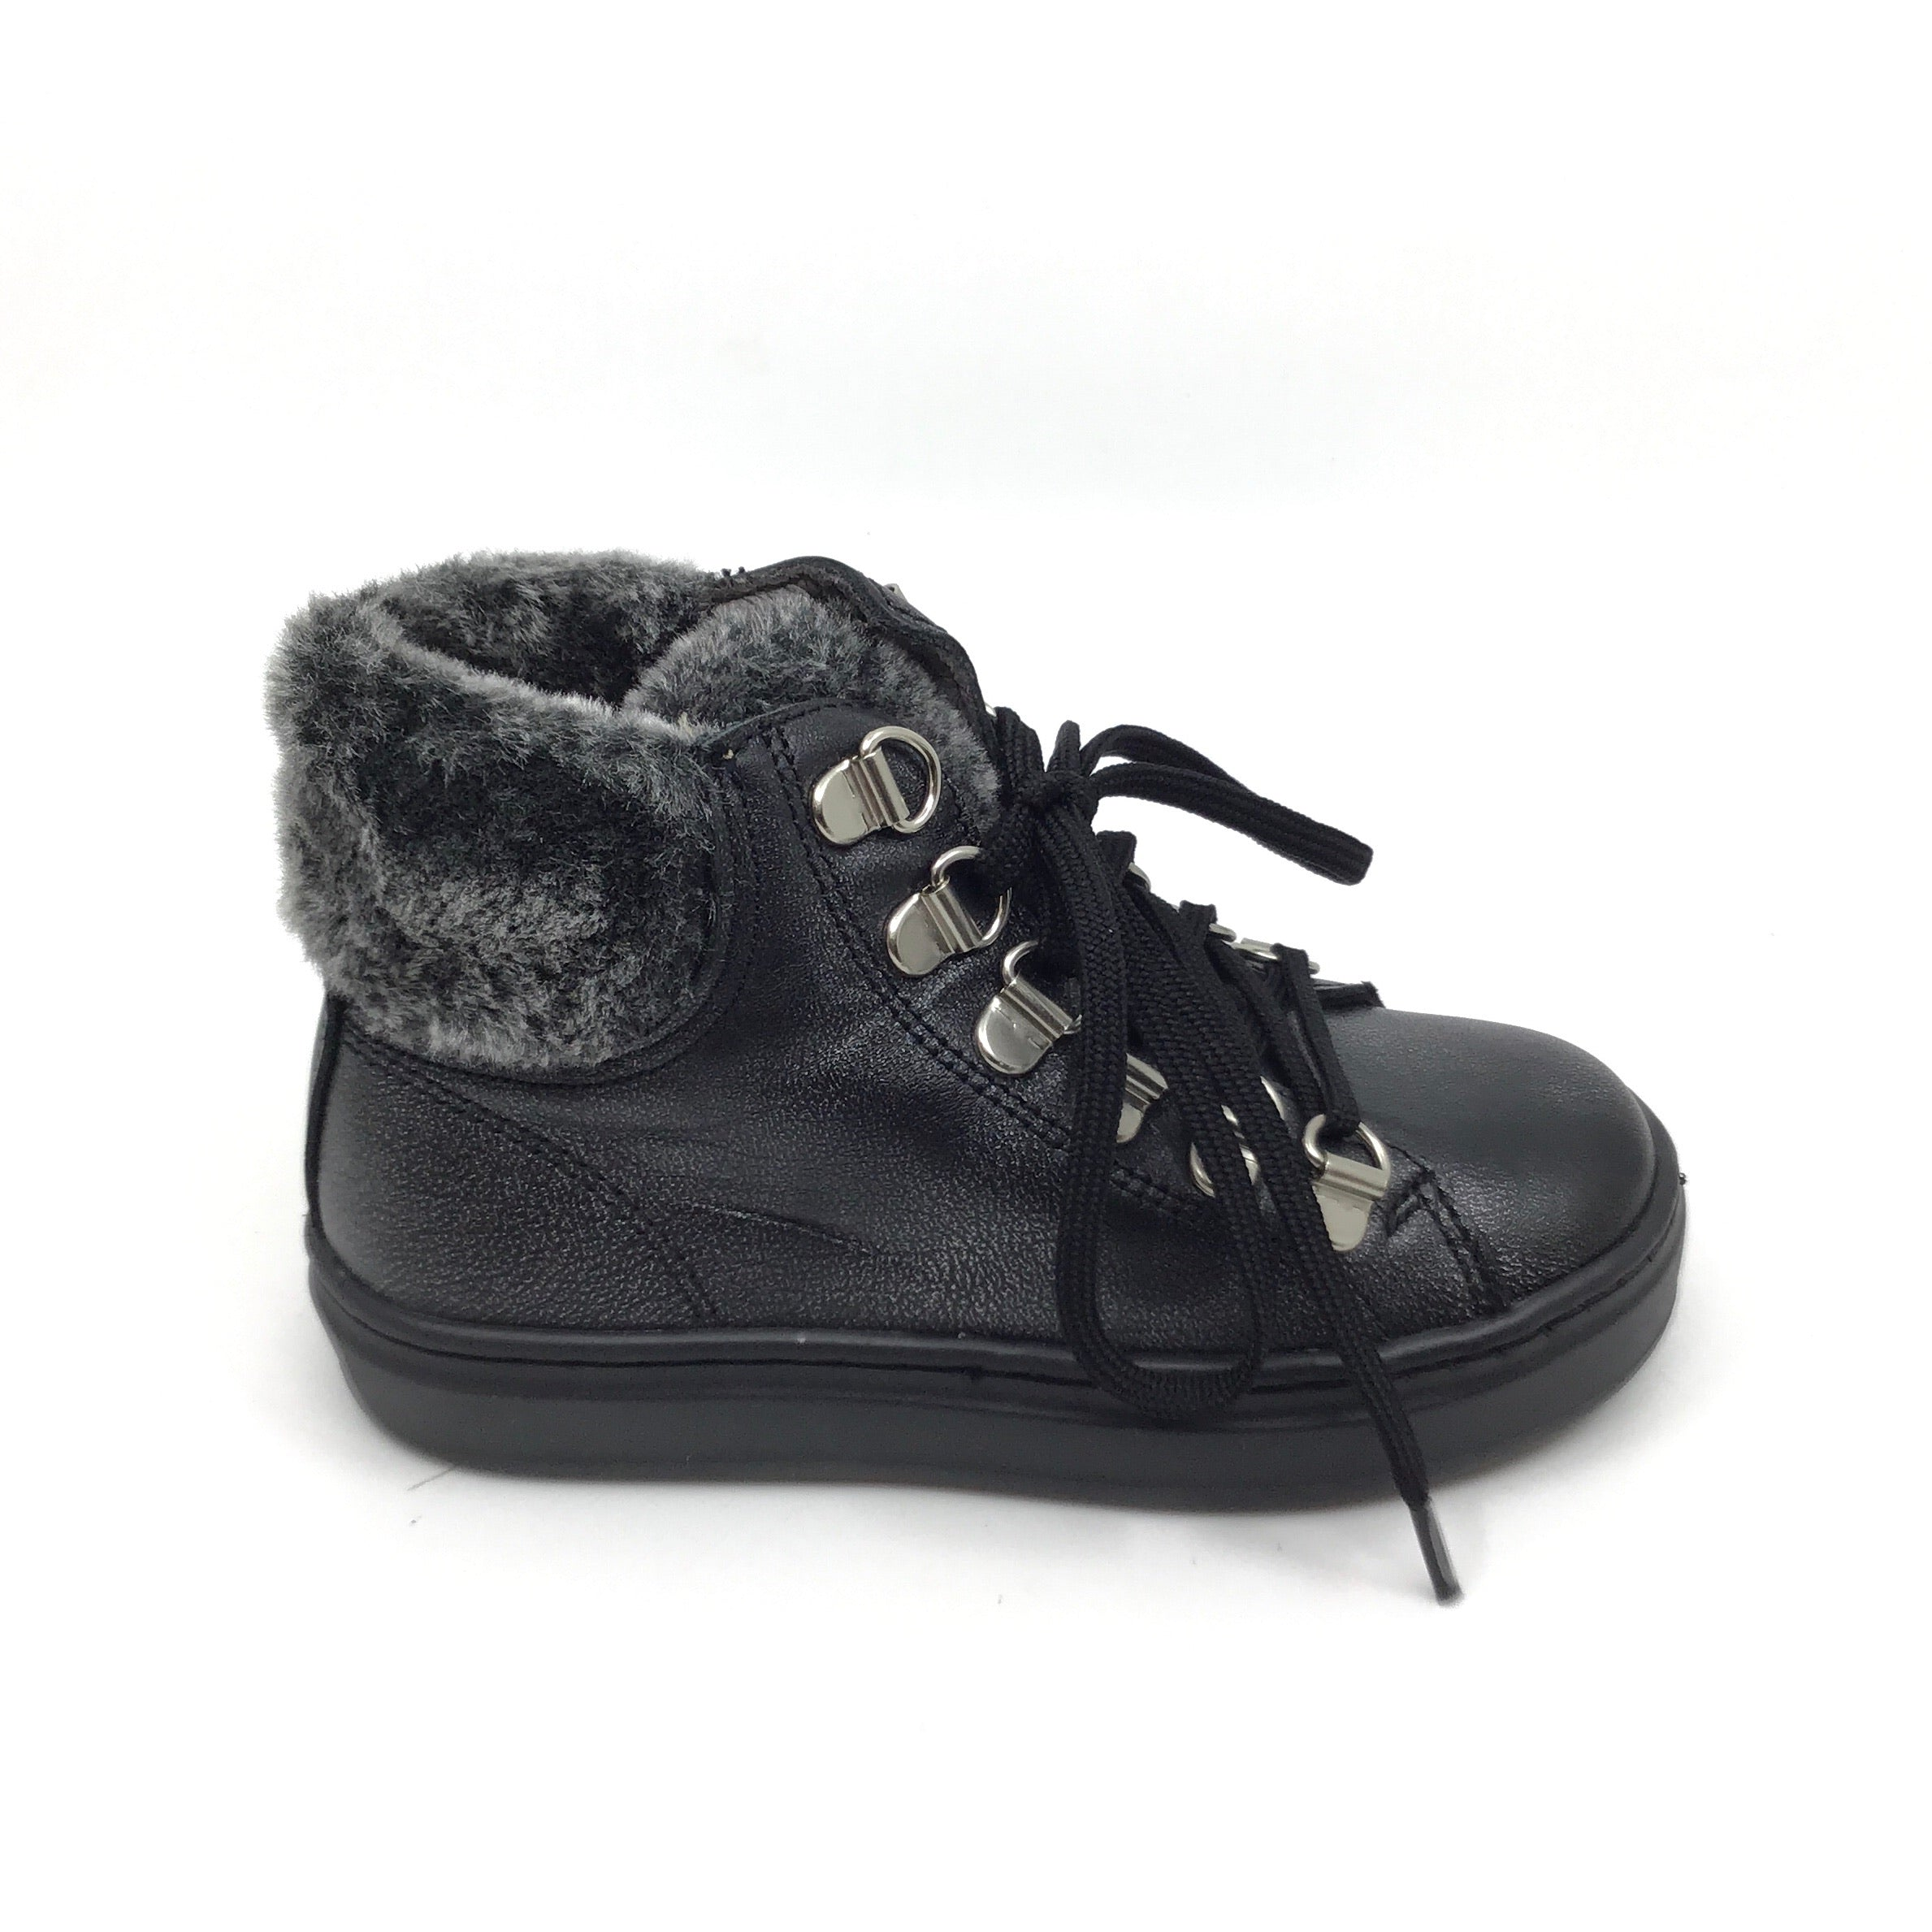 Blublonc Black Fur Collar Bootie